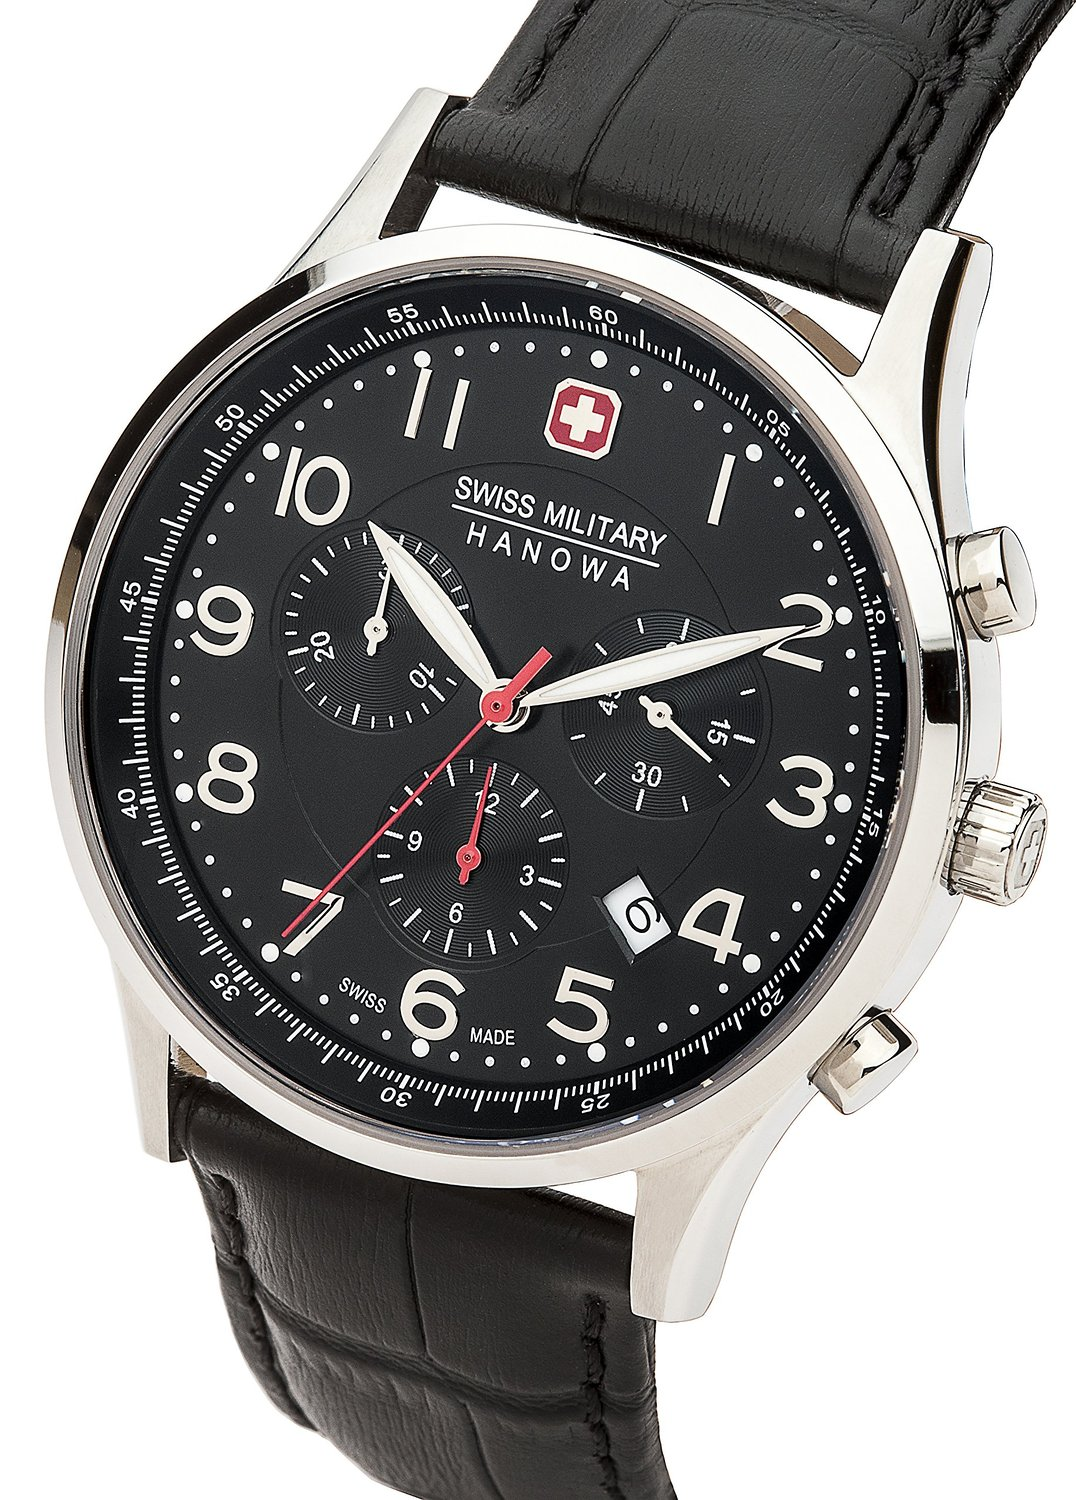 Swiss Military Hanowa Men's Quartz Watch 06-4187.04.007 06-4187.04.007 with Leather Strap